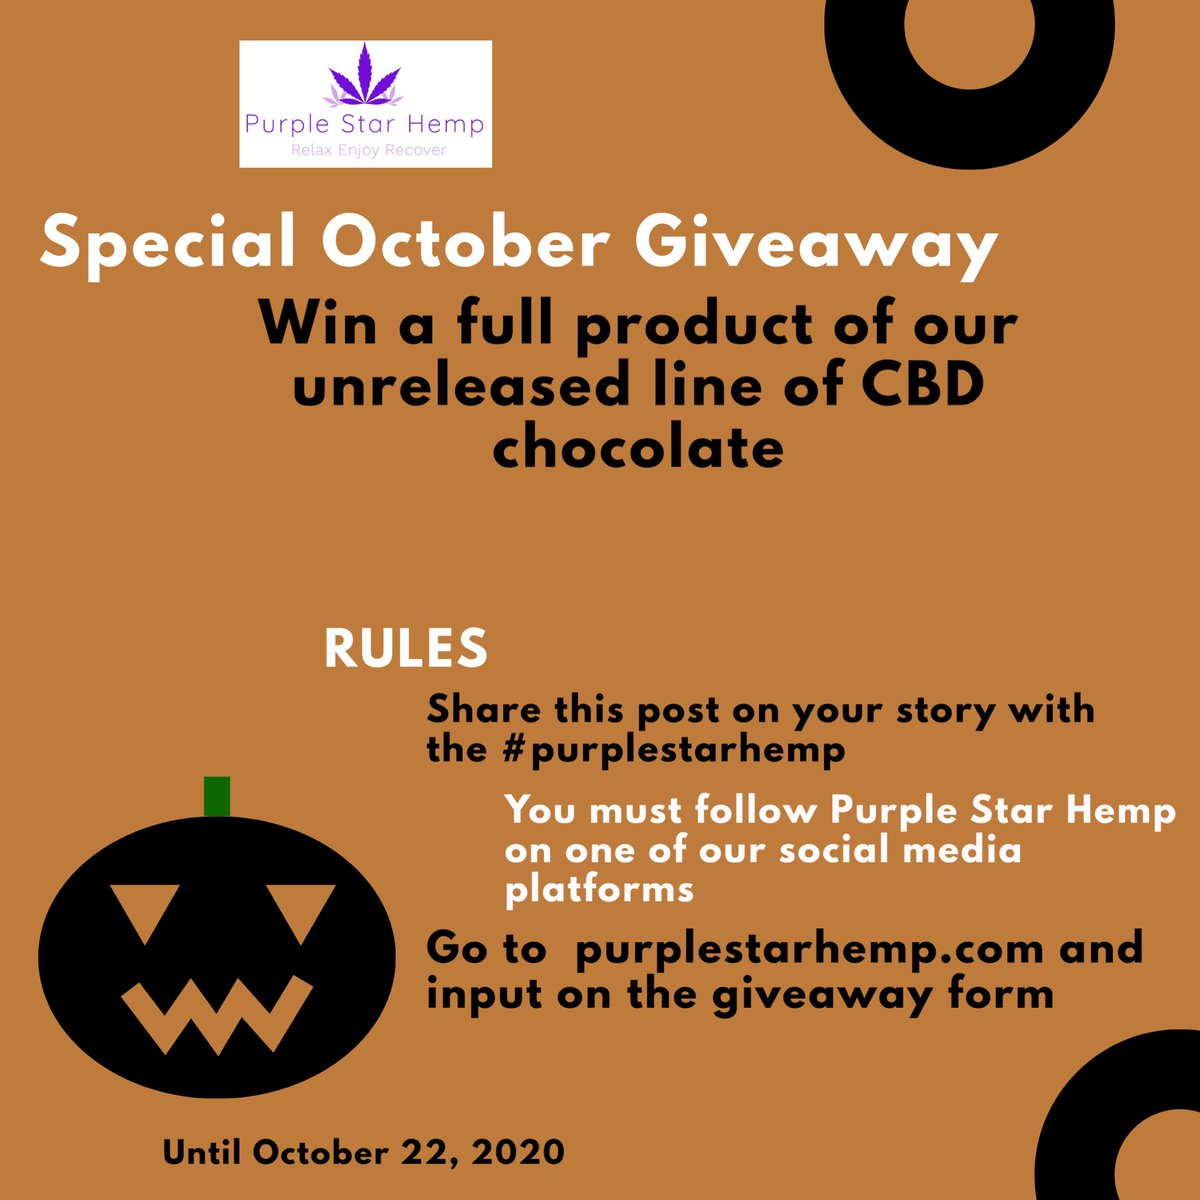 Treat yourself and enter your name for a chance to win a full product of our unreleased CBD chocolate.   🎃🍫Rules🍫🎃  #giveaway #raffle #cbd #cbdproducts #health #lifestyle #winner #southflorida #chocolate #unreleased #futureproduct #special #october https://t.co/ZcDeayoecG